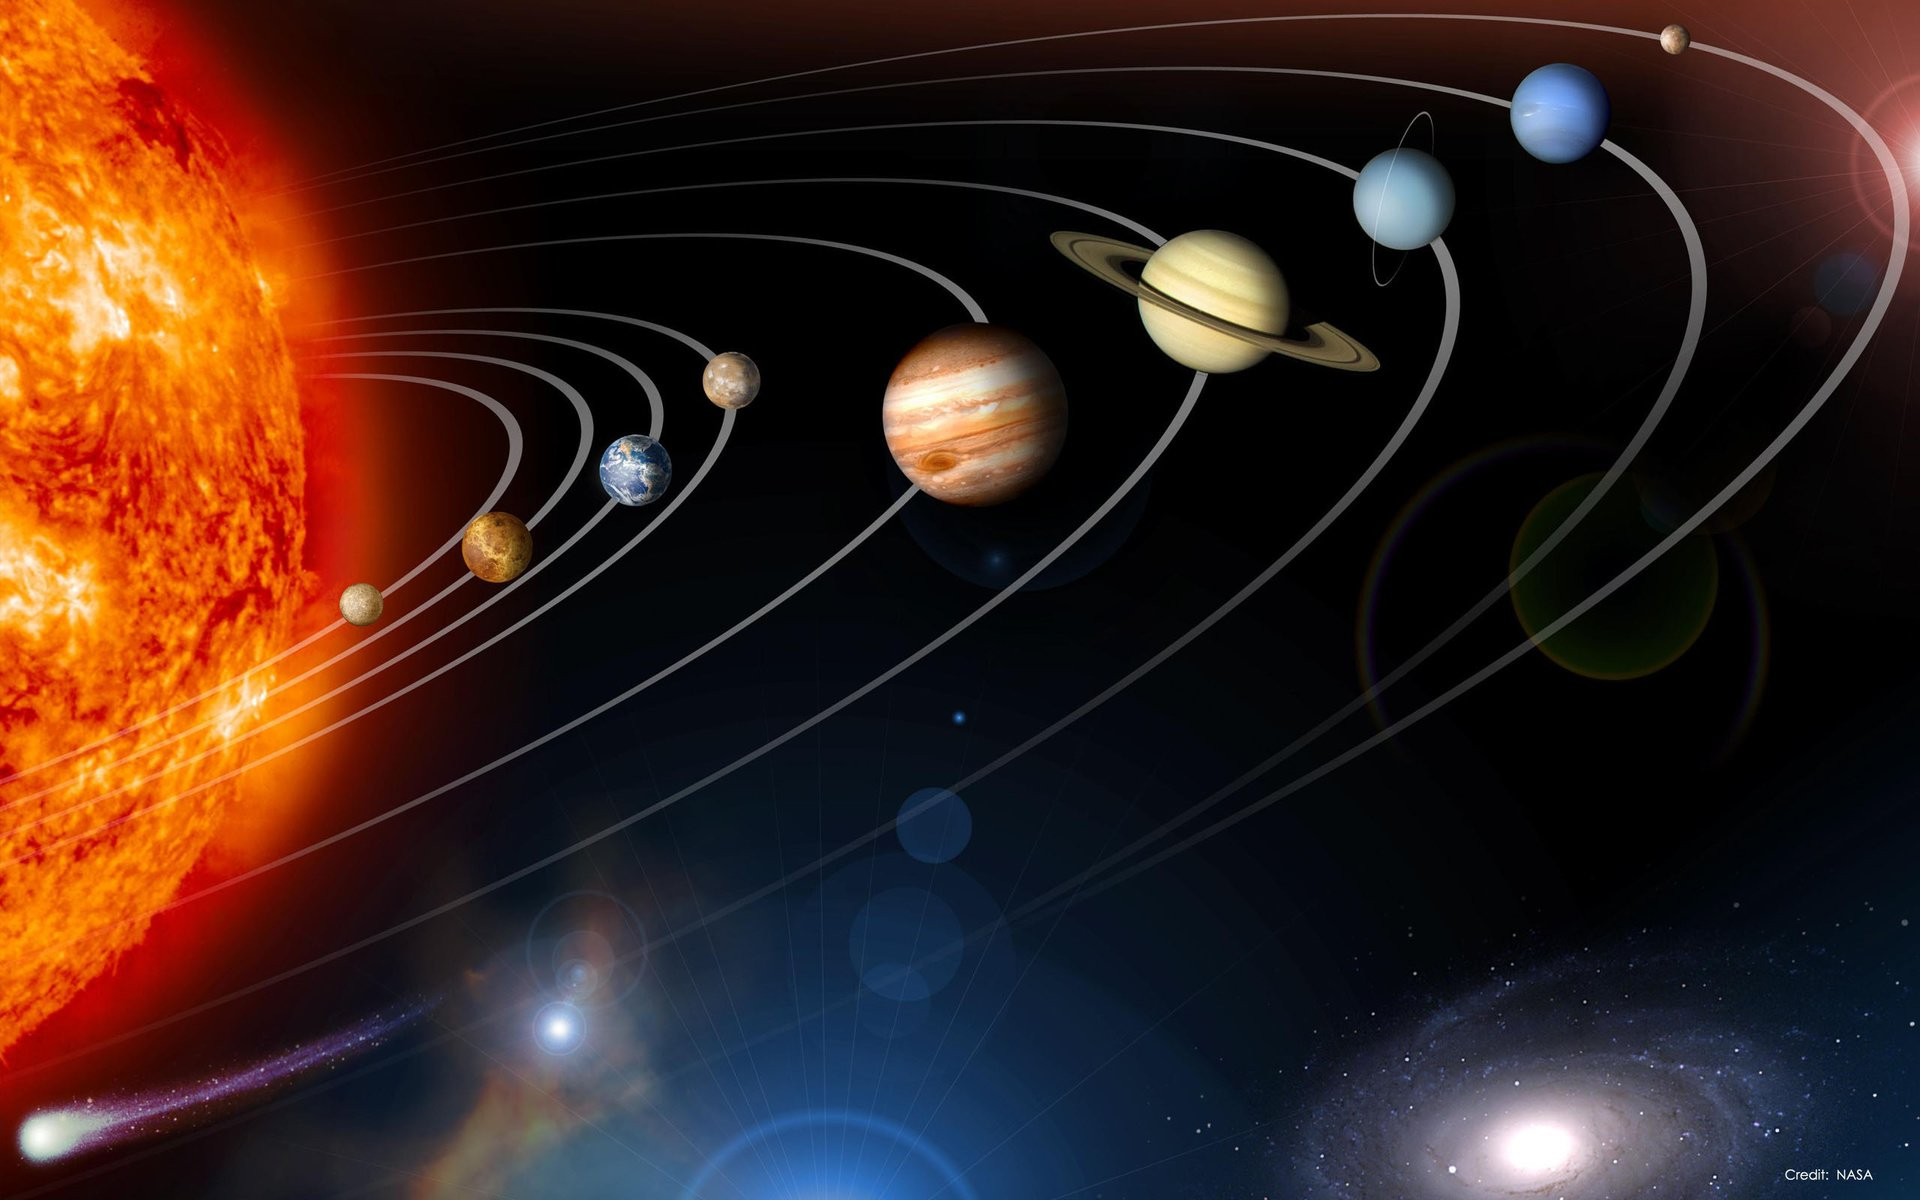 the importance of gravity in the solar system Gravity is very important to us we could not live on earth without it the sun's gravity keeps earth in orbit around it, keeping us at a comfortable distance to enjoy the sun's light and warmth.